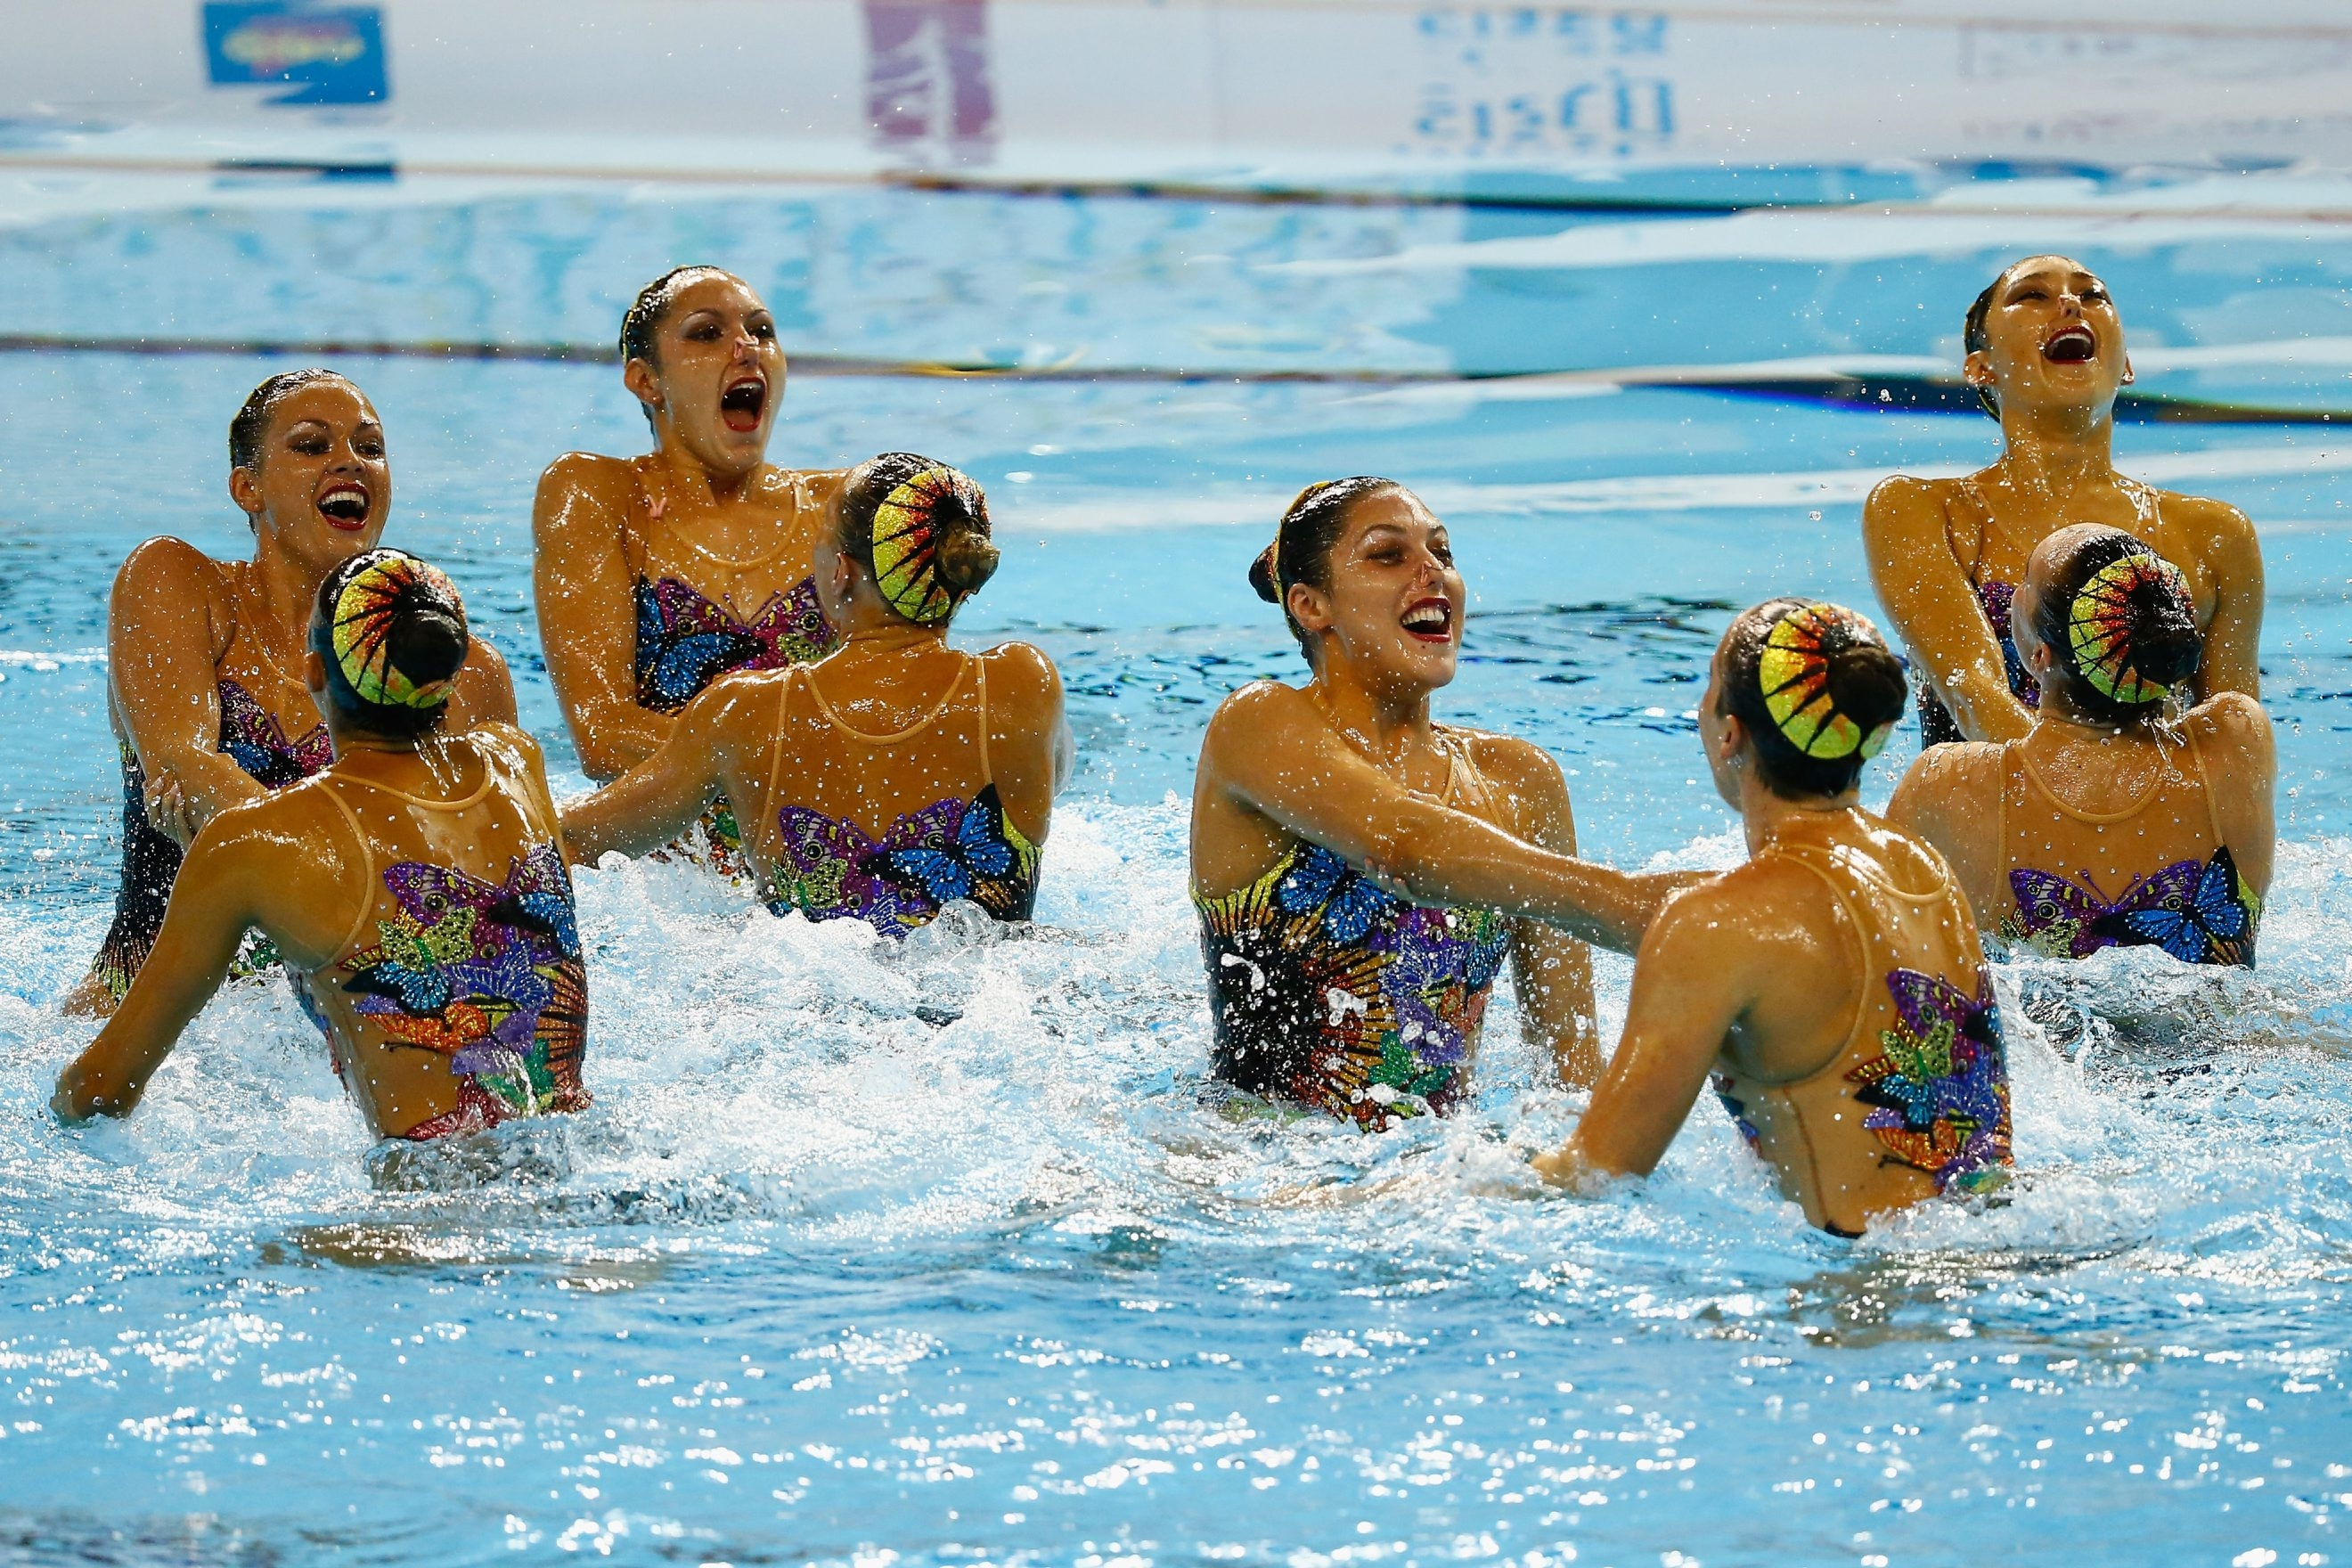 Members of Team USA compete during the synchronized swimming free final at the Pan Am Games in Toronto on Saturday.